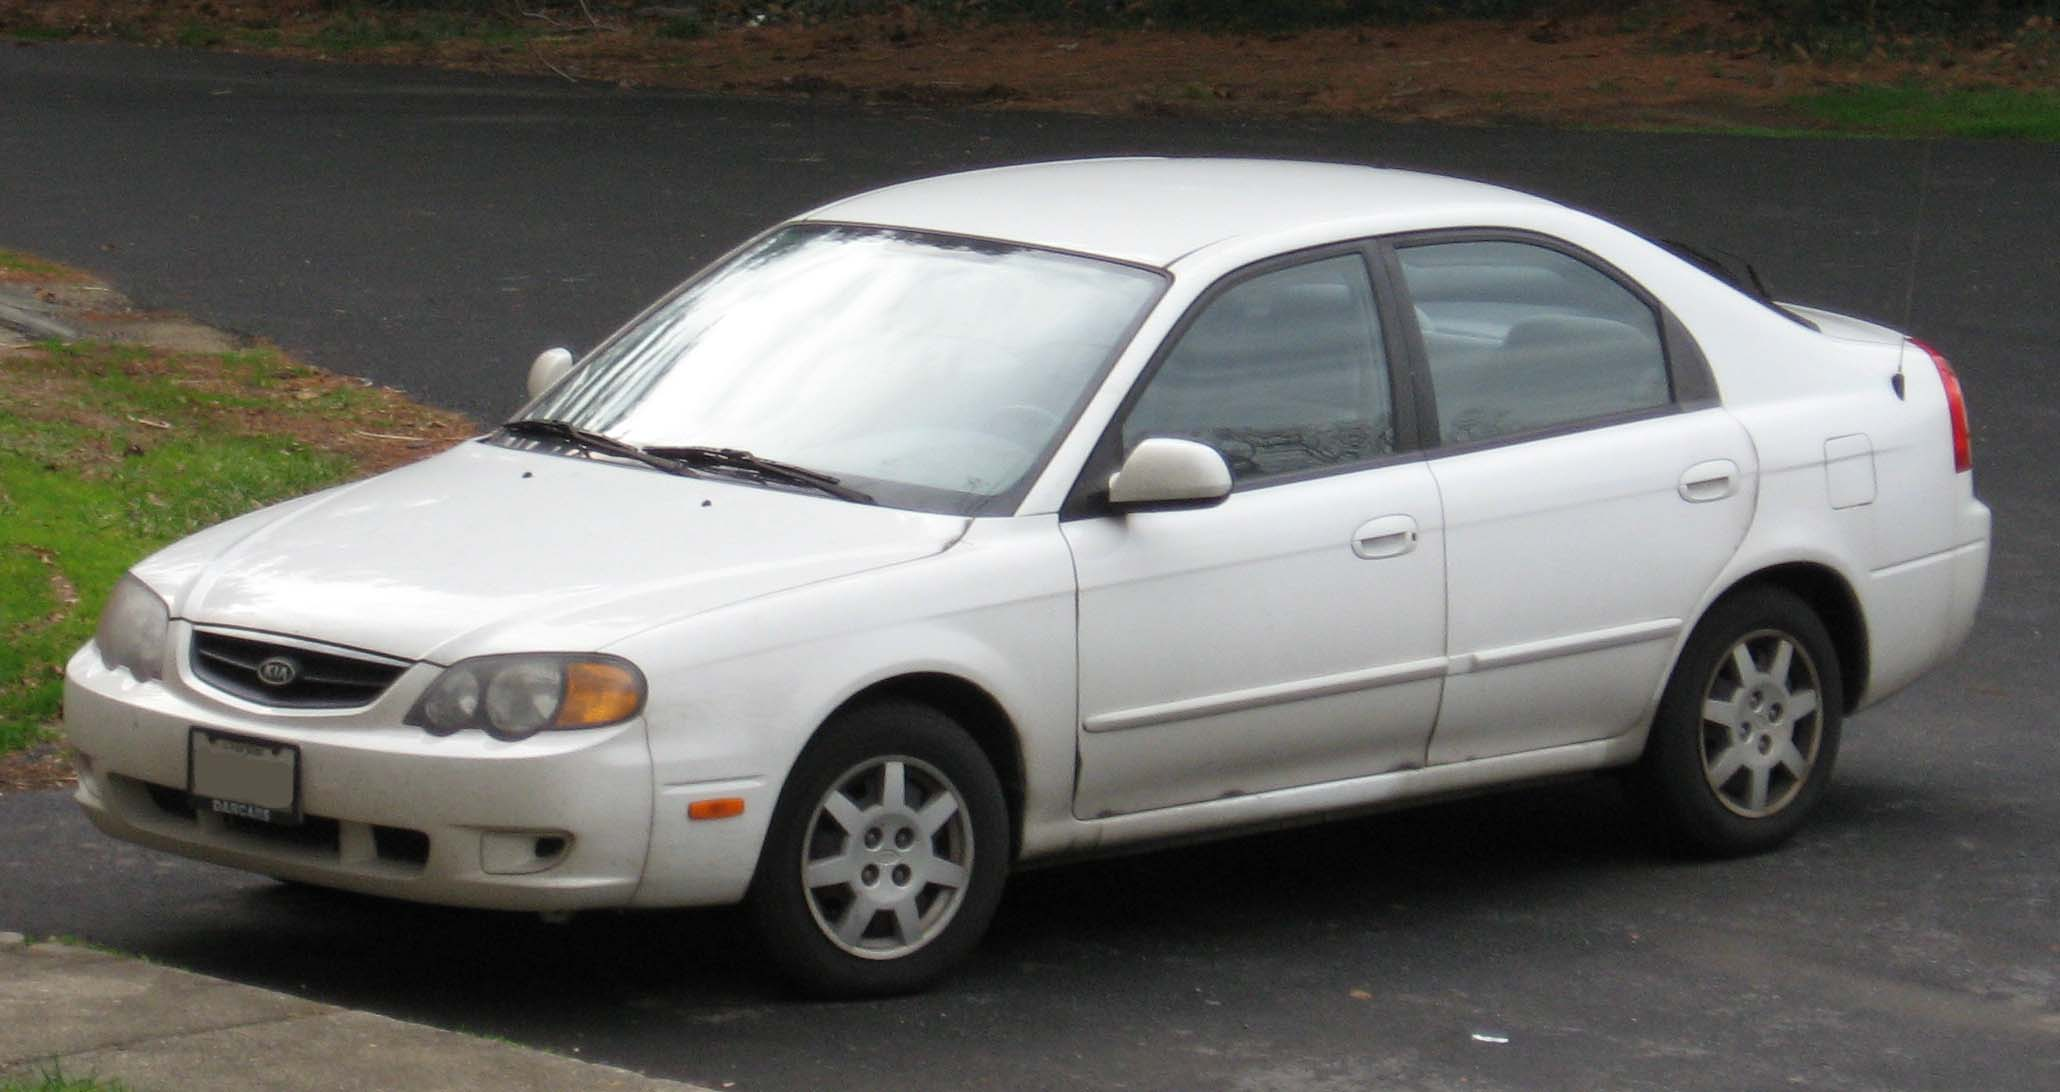 Kia Sephia 2002 photo - 1